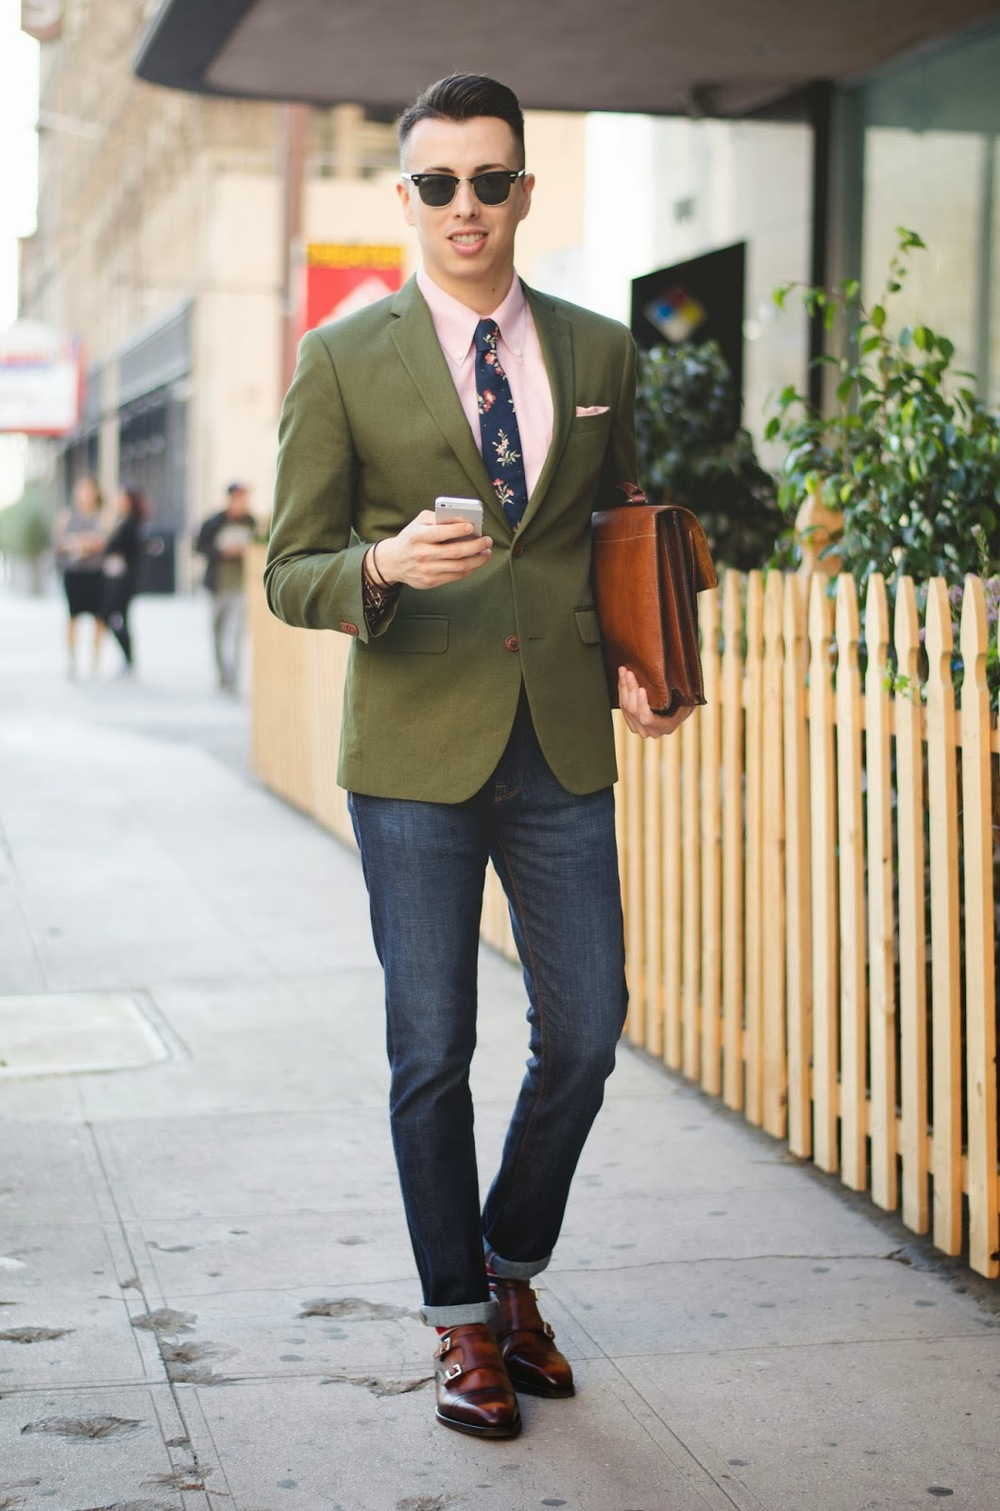 dress-shirt-and-pocket-square-and-tie-and-briefcase-and-jeans-and-double-monks-and-blazer-original-1486.jpg